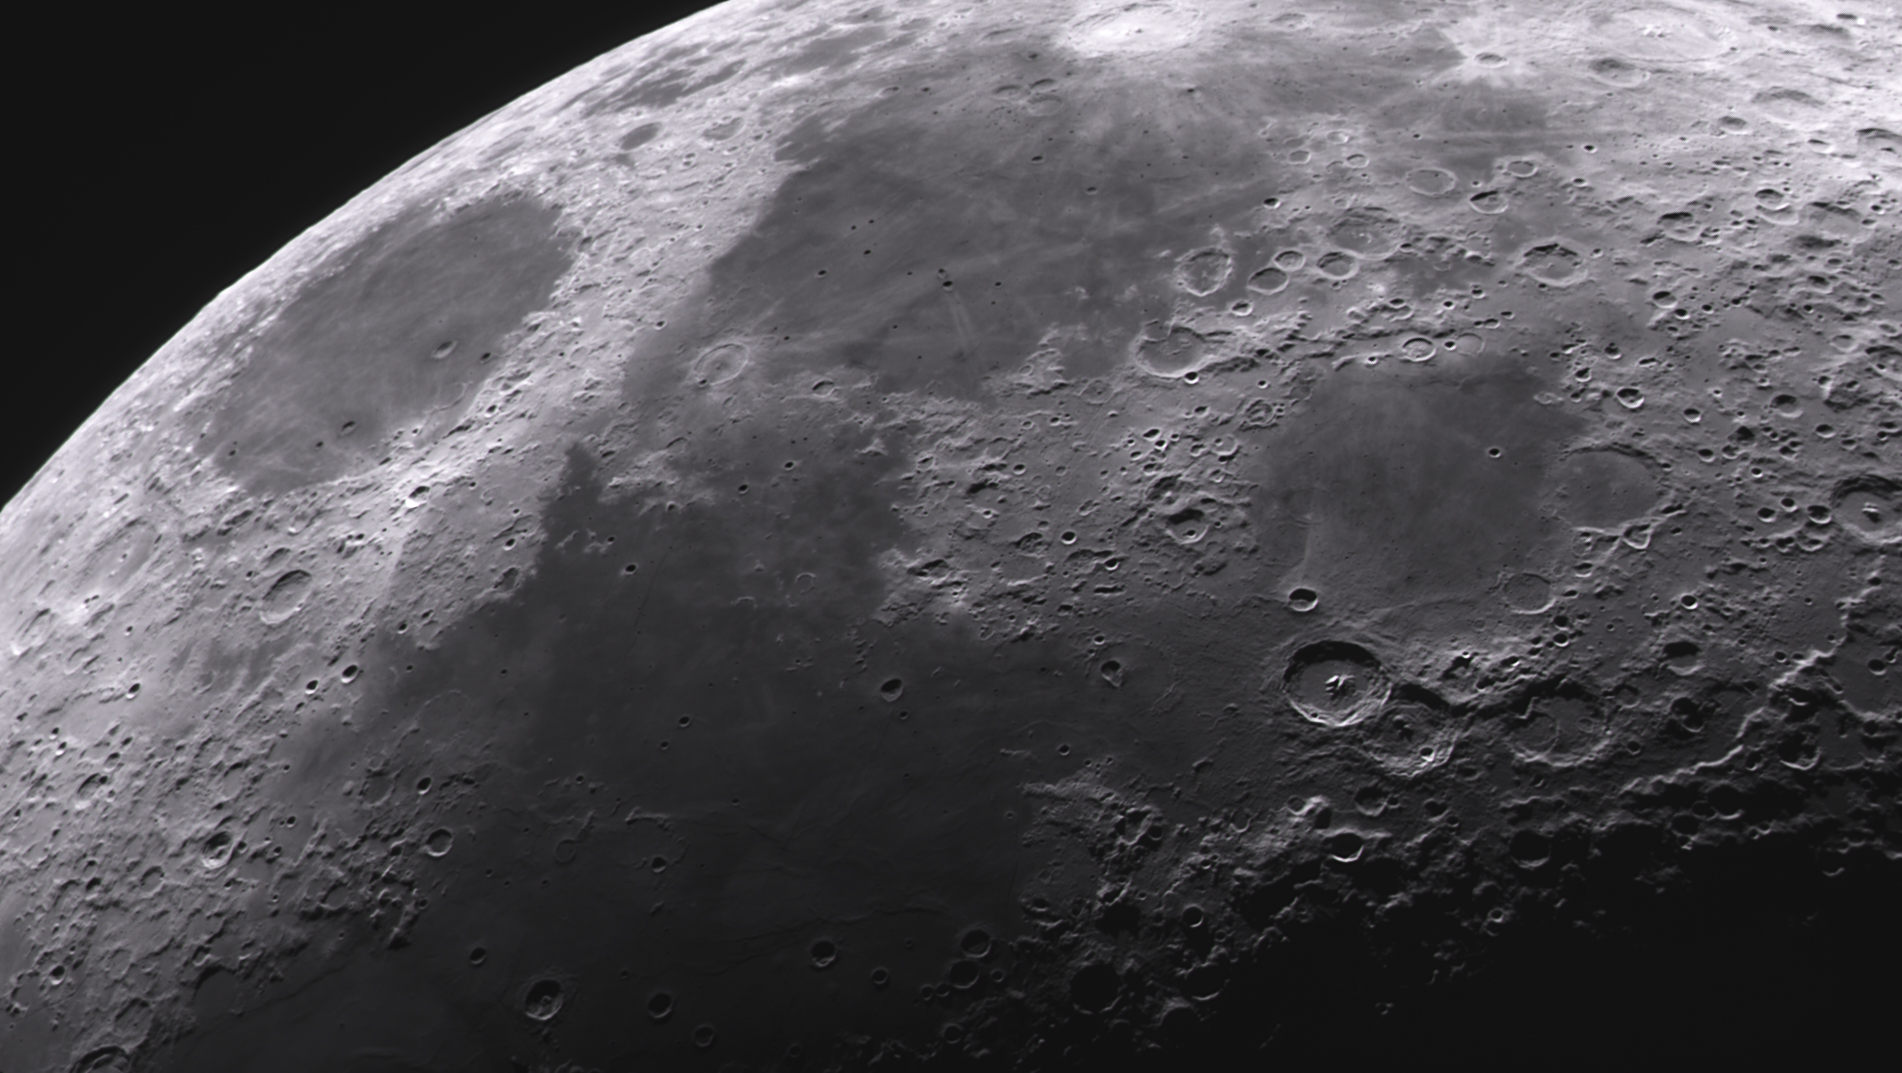 Even more lunar features for the ASE Lunar-100